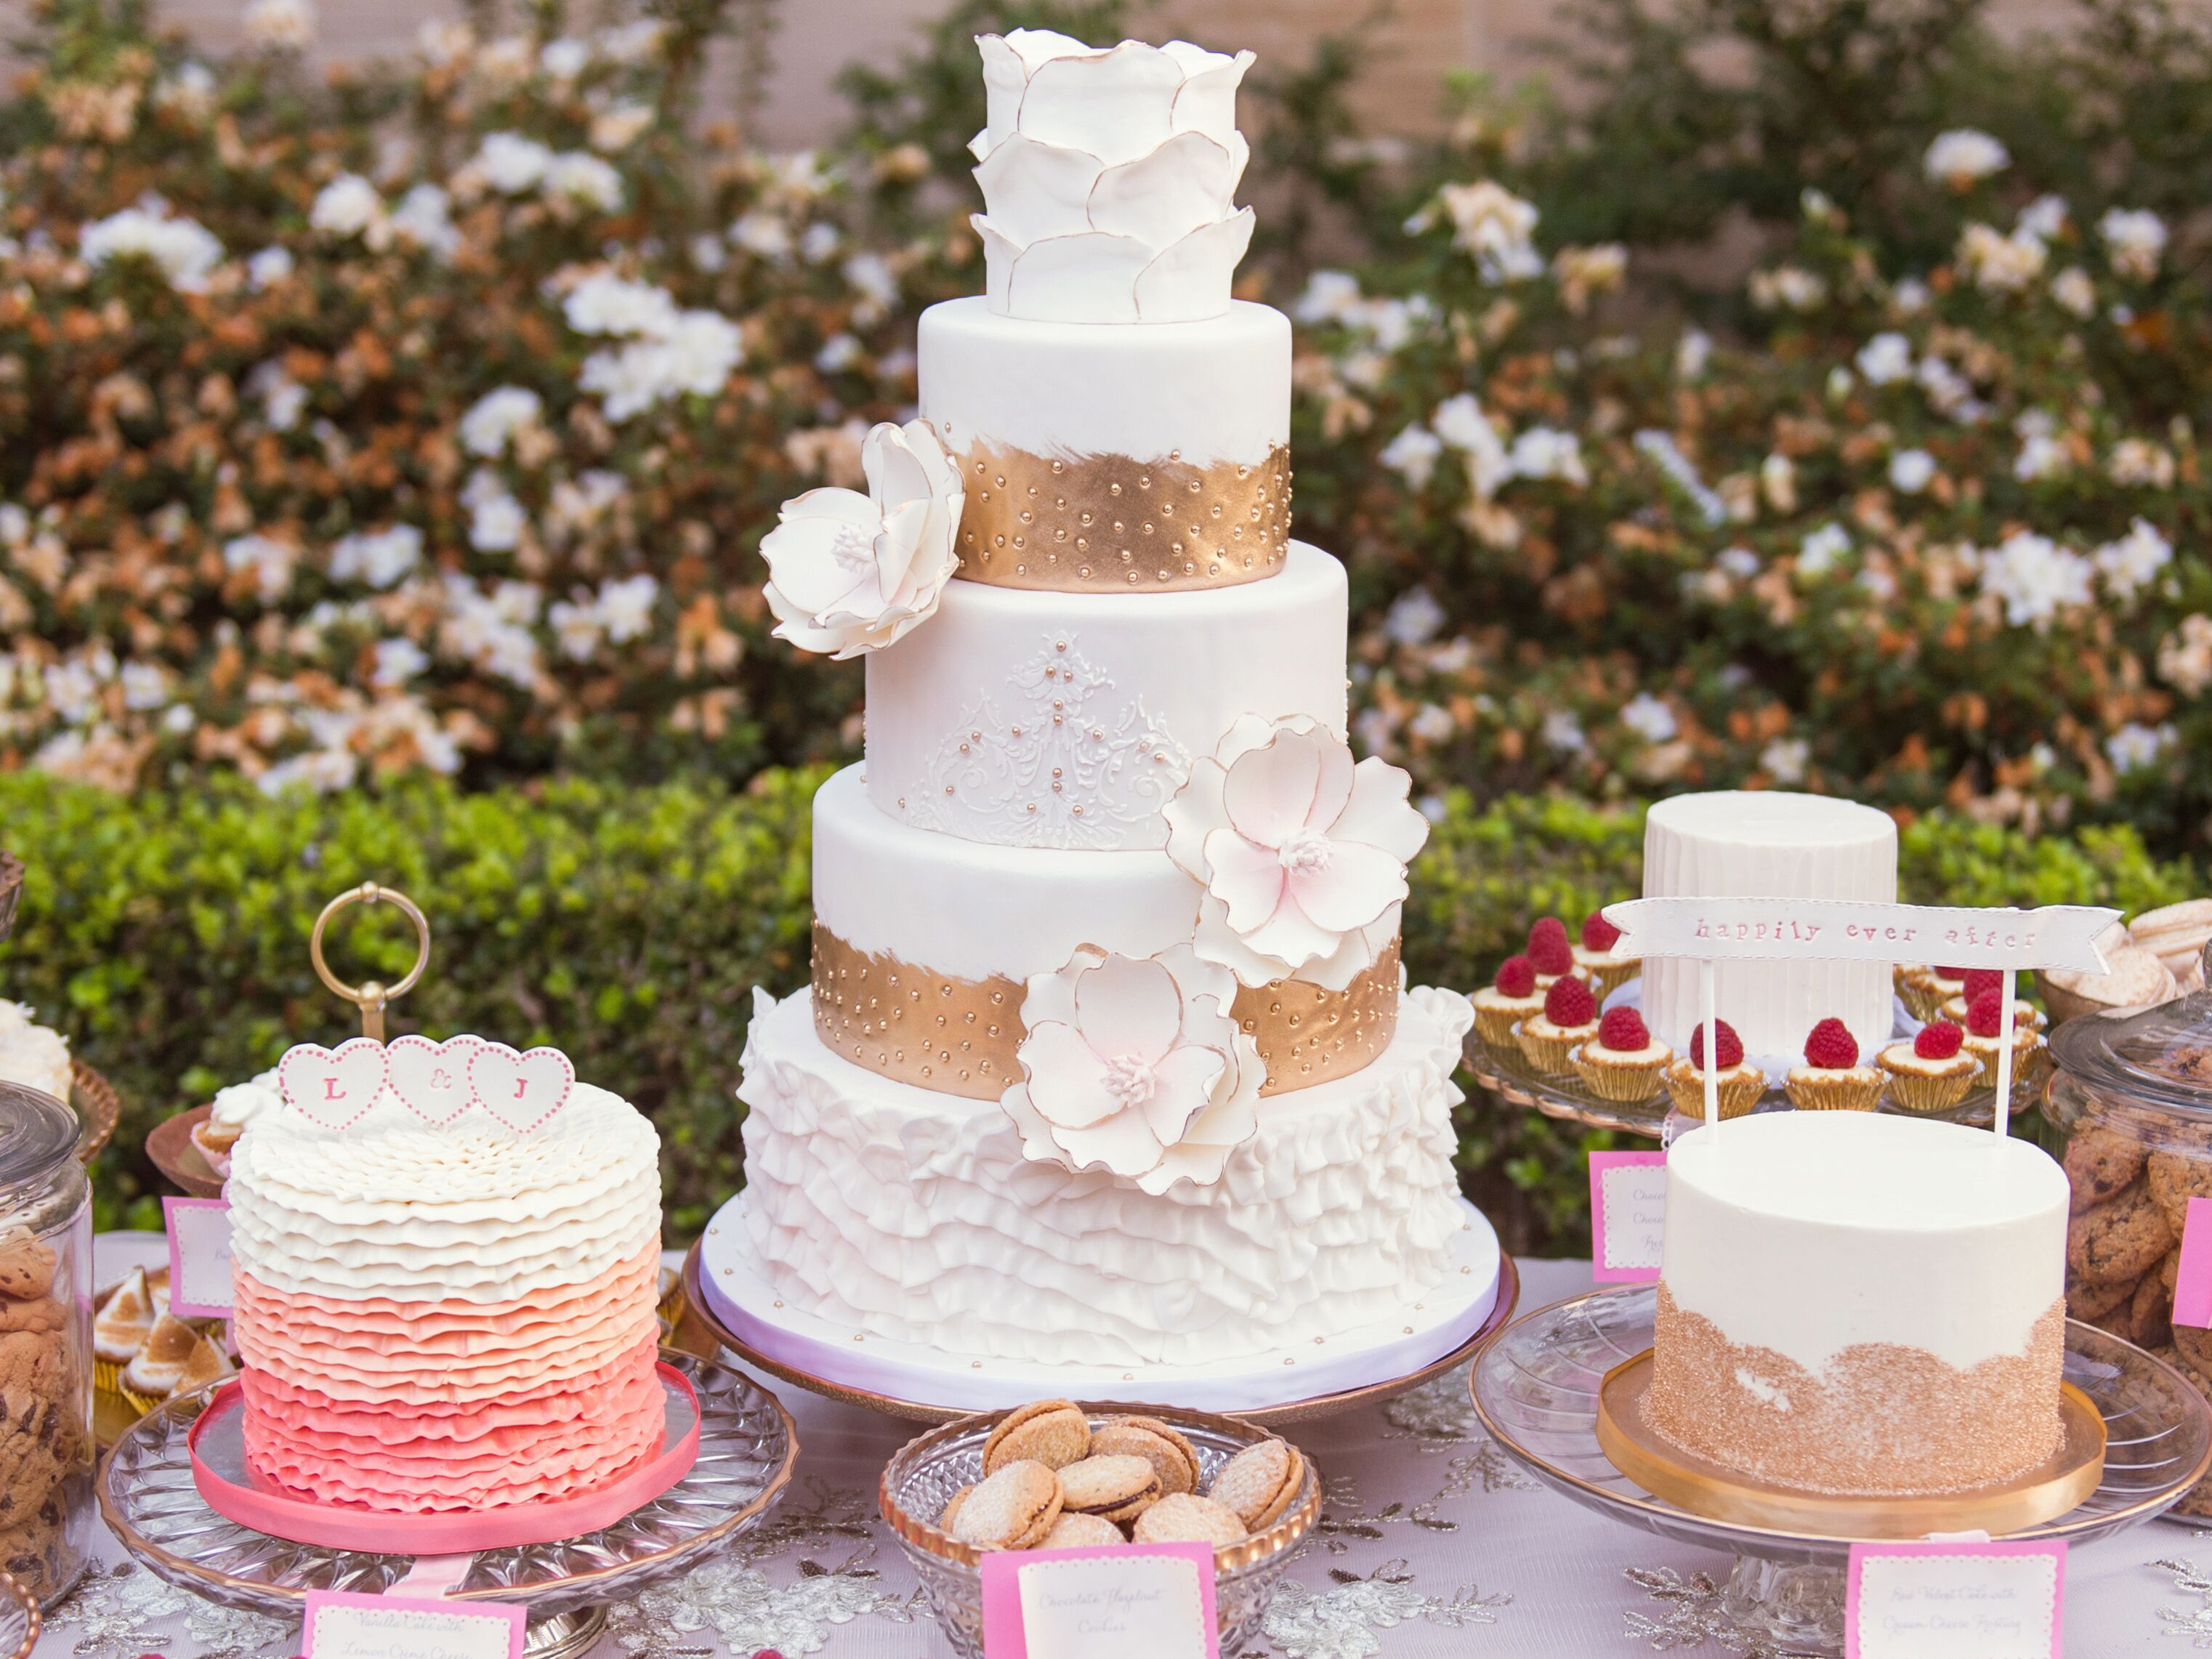 wedding cakes dessert ideas beyond the wedding cake